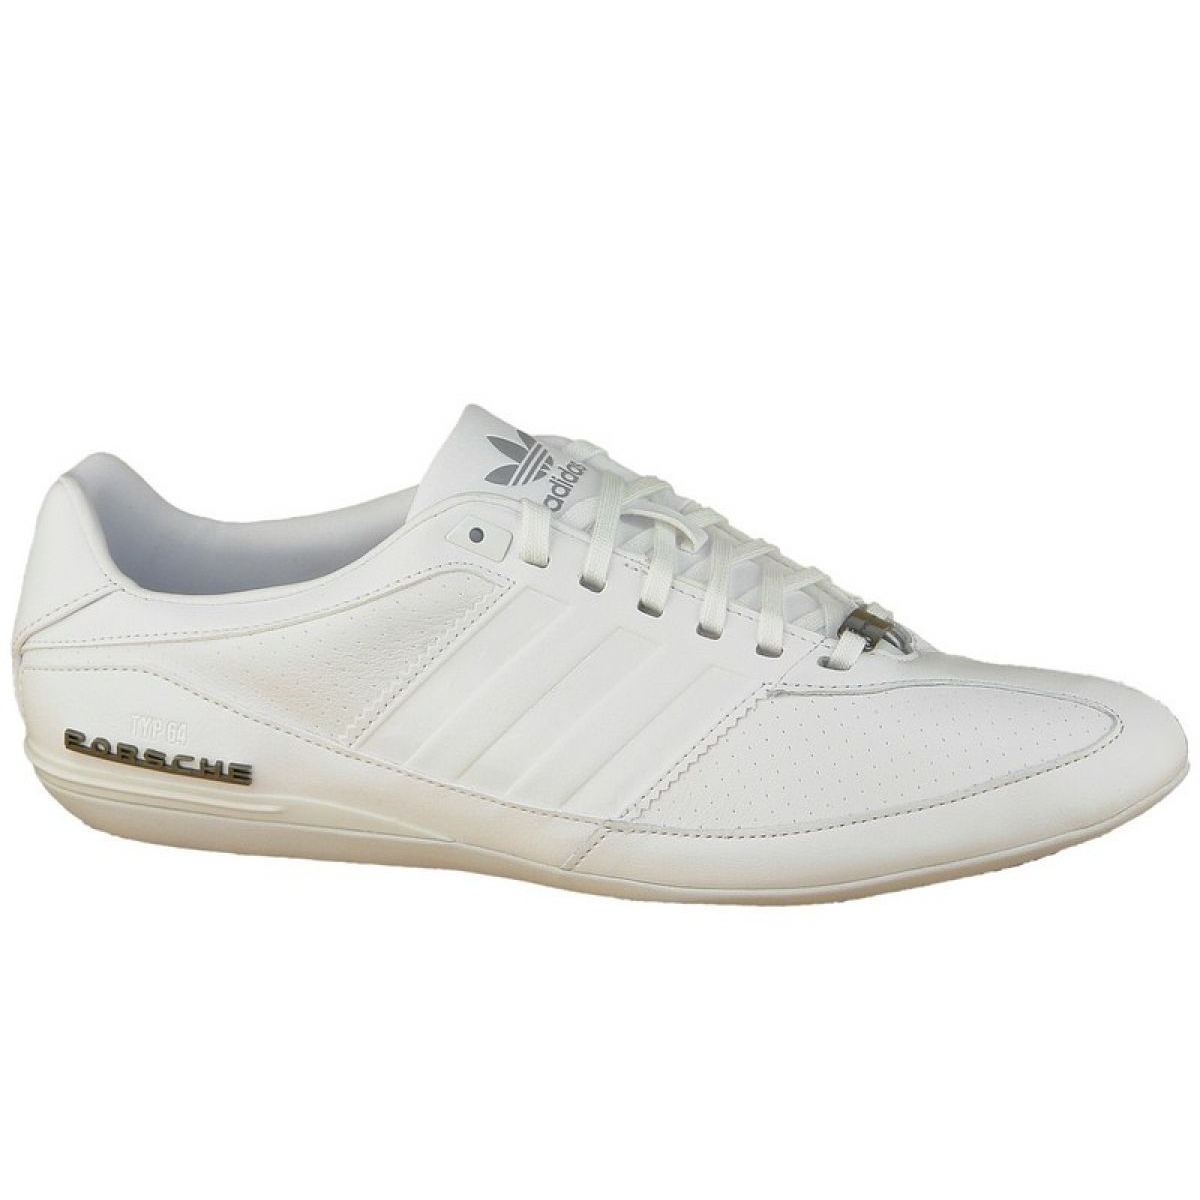 finest selection 43c29 d16b9 White Shoes adidas Porsche Typ 64 M Q23135